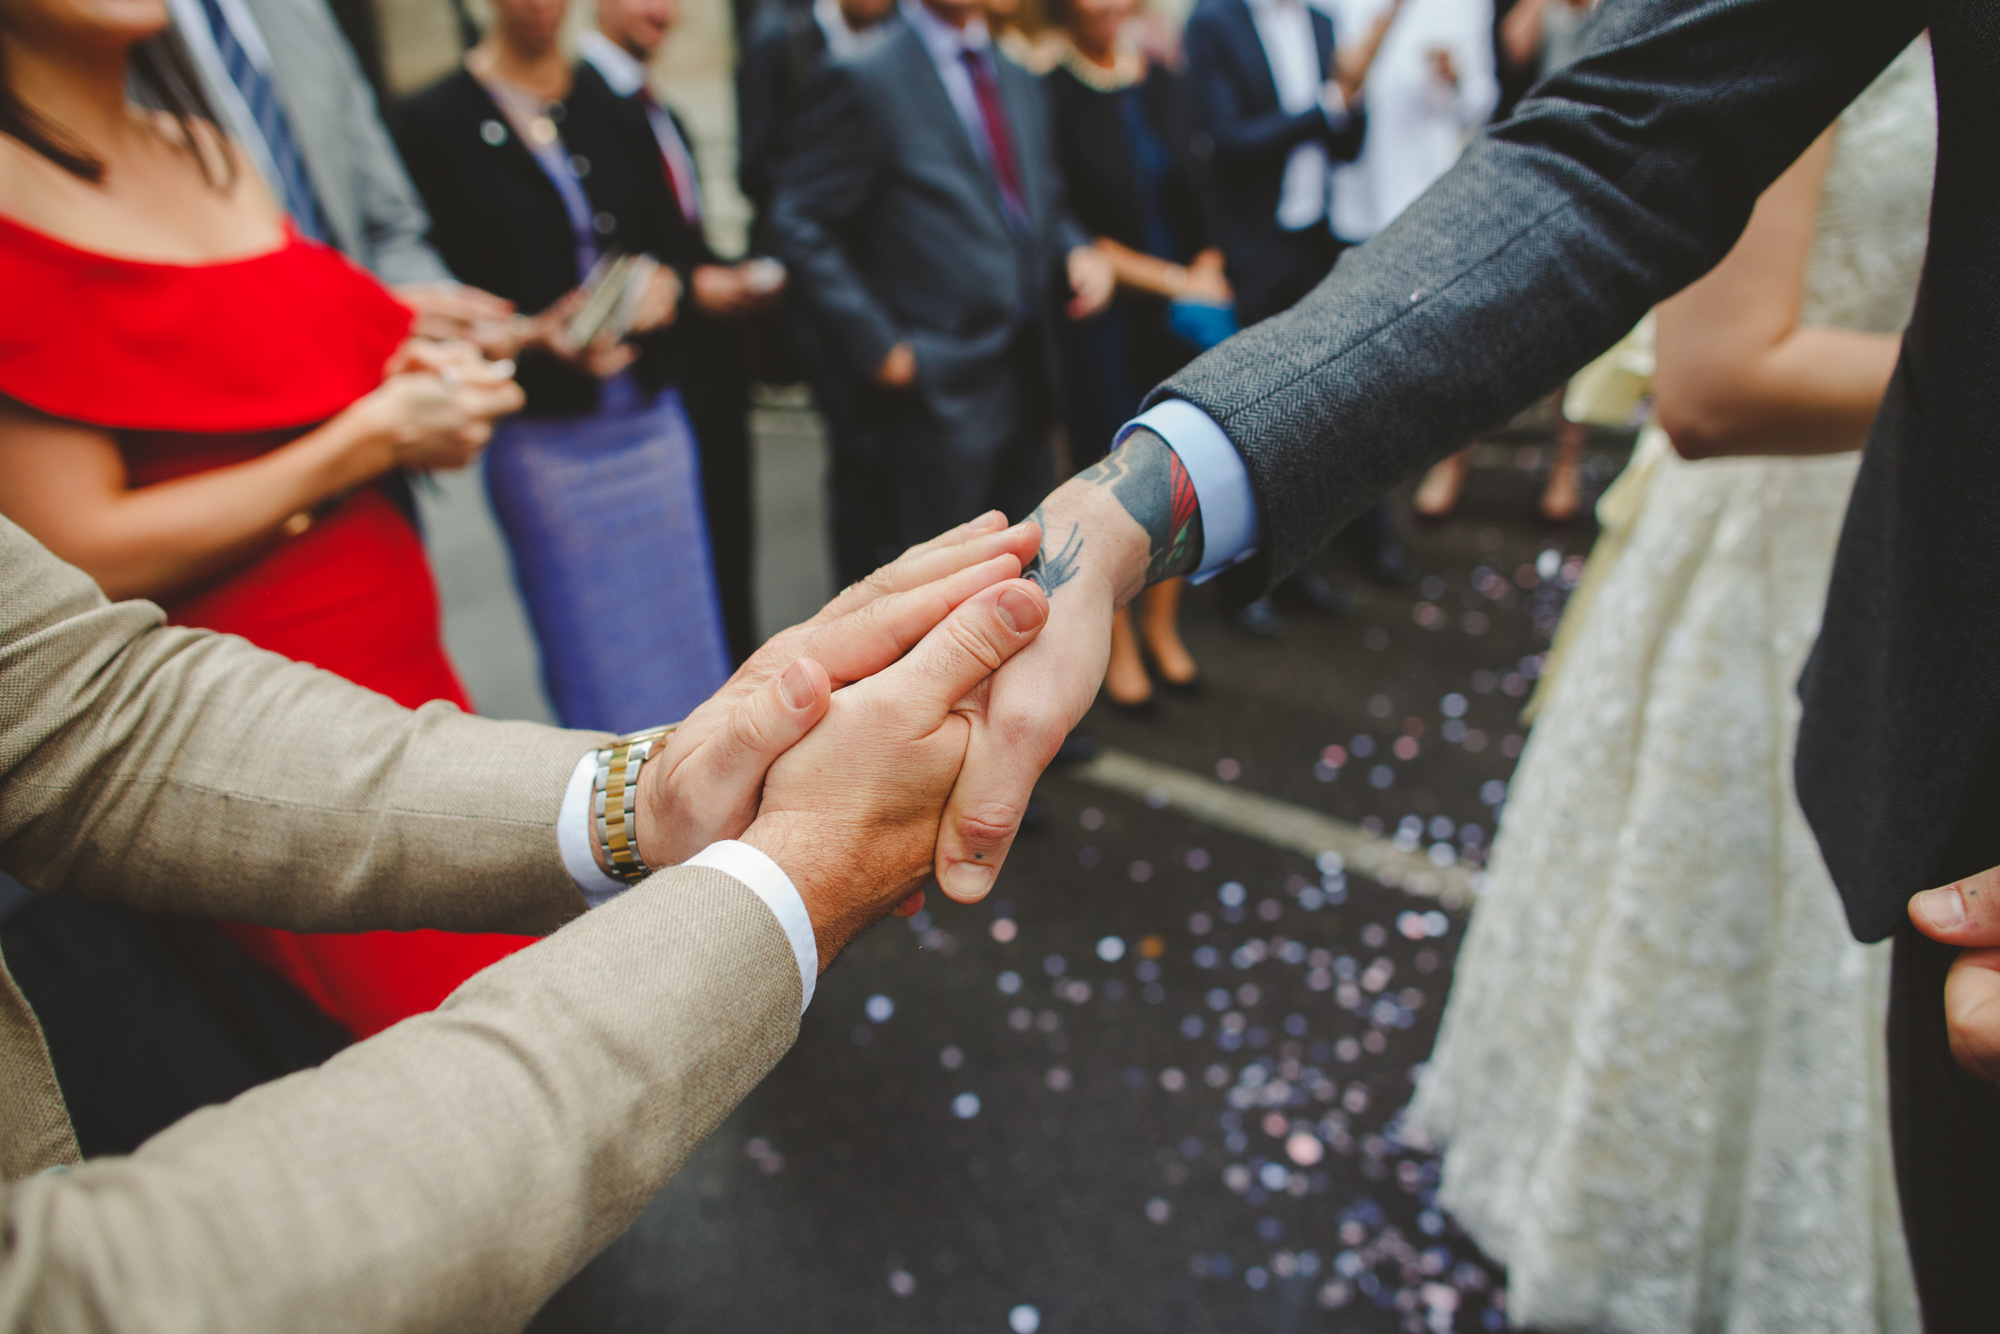 reportage wedding photo, groom shaking hands at London wedding